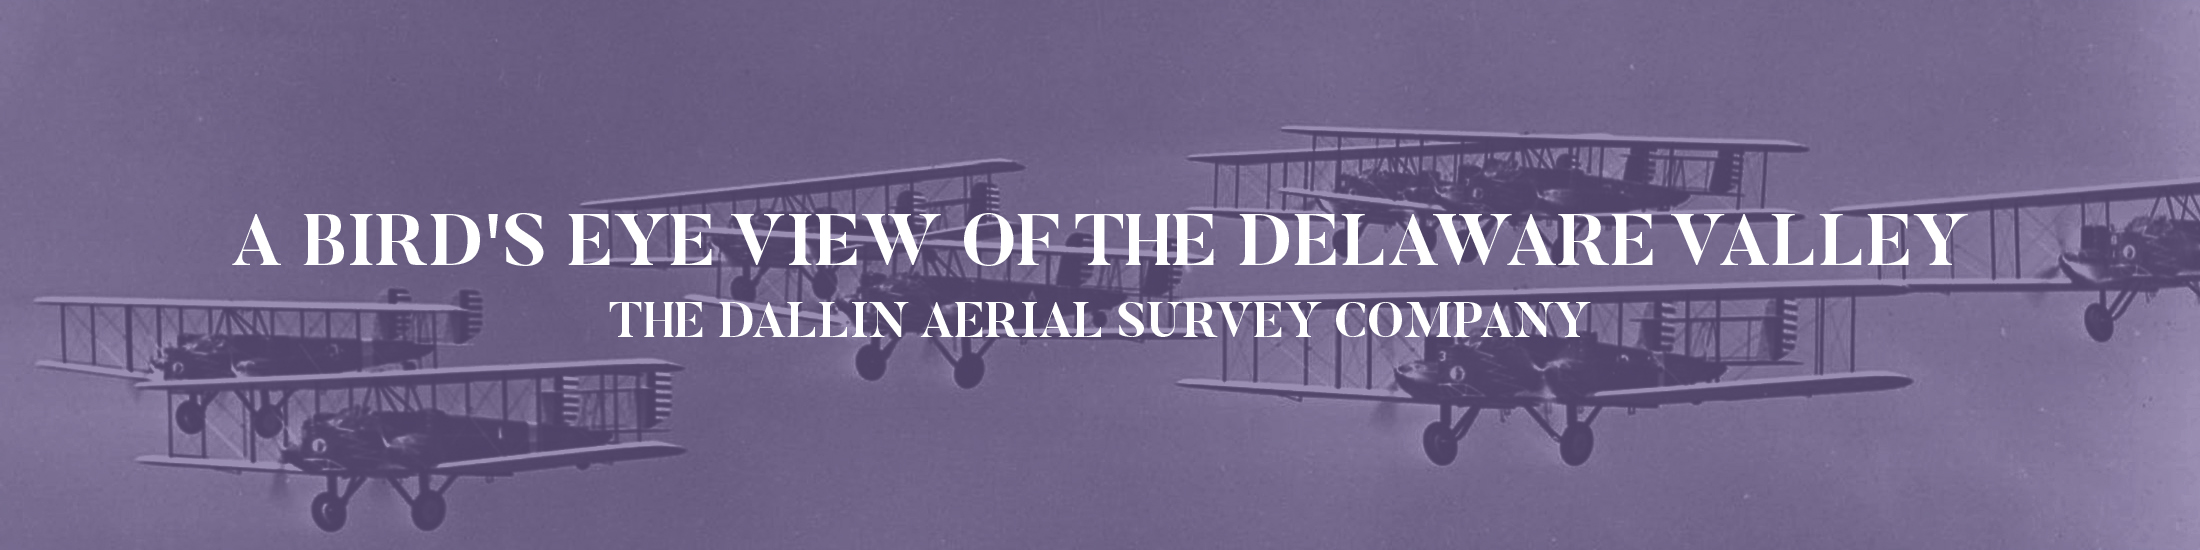 Dallin aerial survey of airplanes in formation